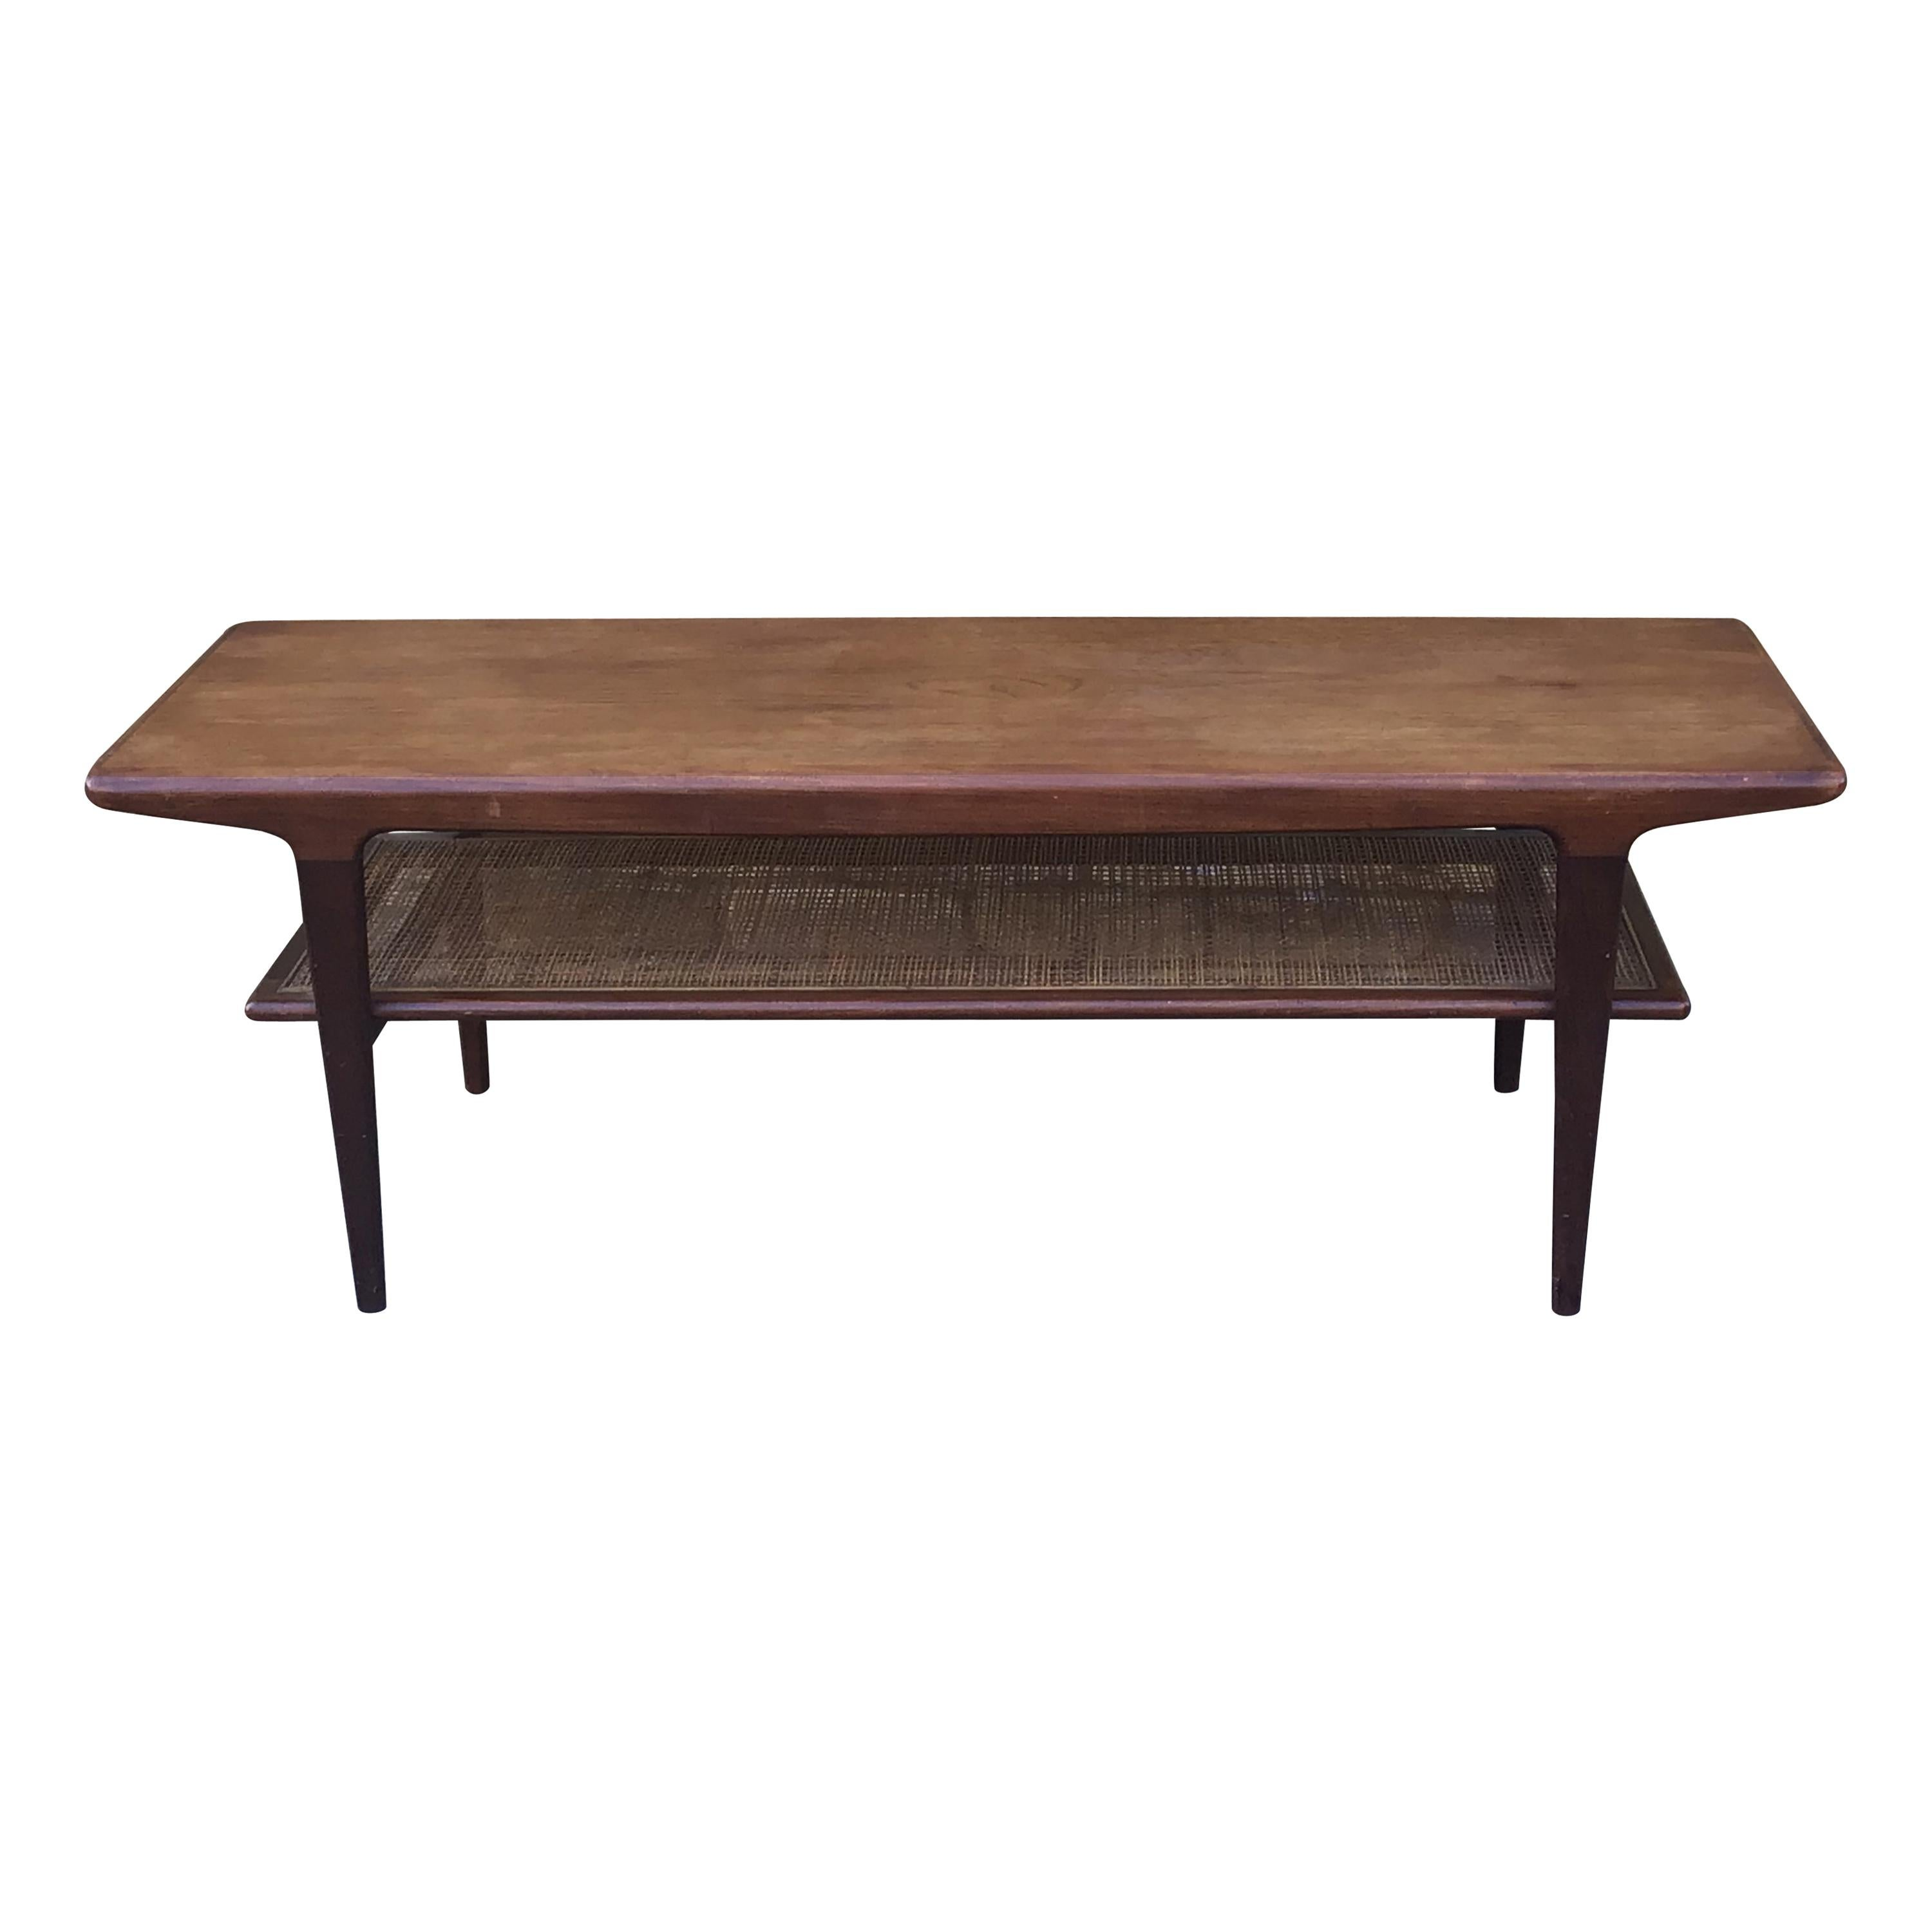 1960s Coffee Table by John Herbert for Younger